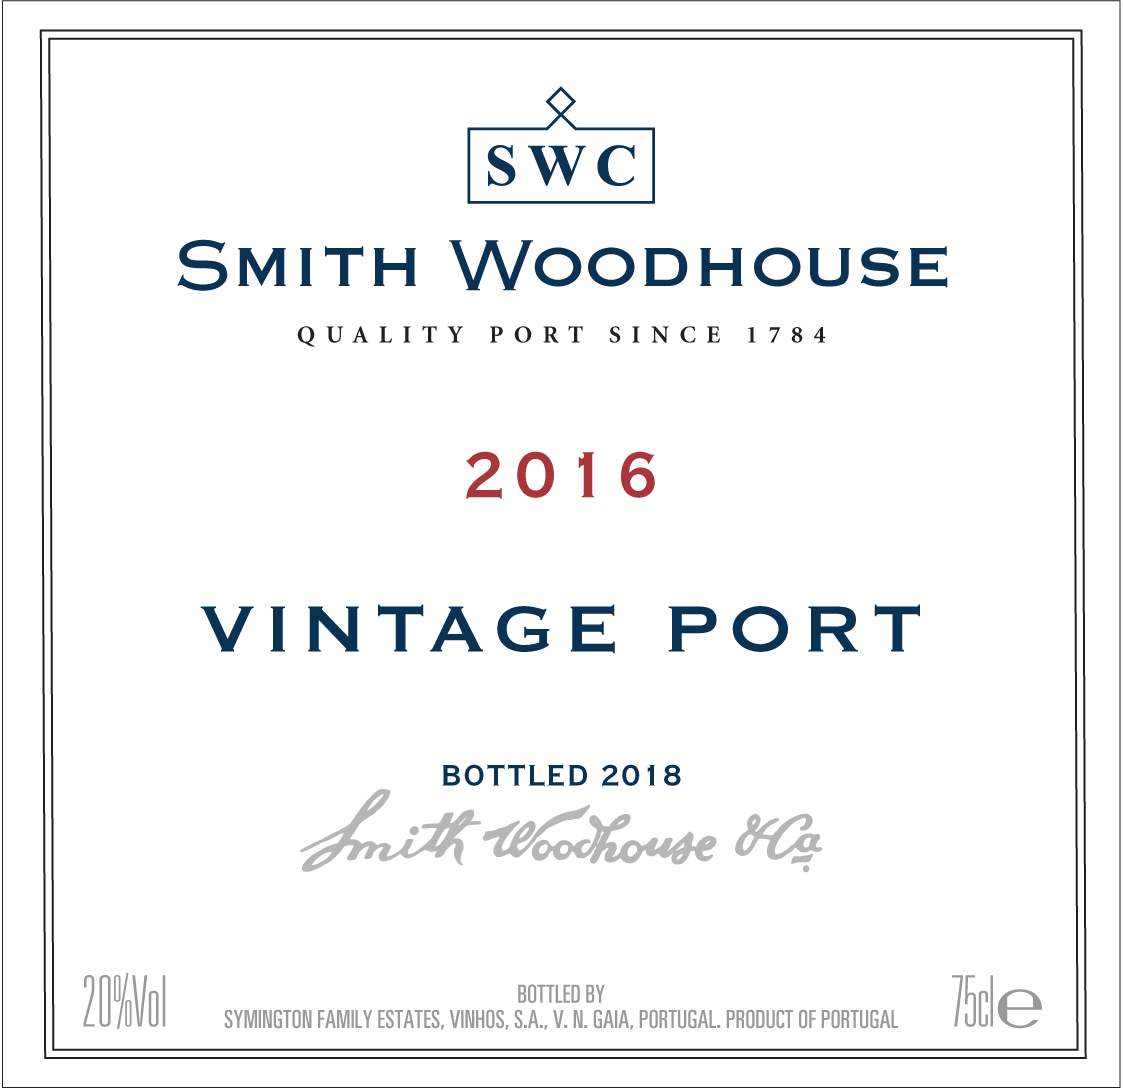 Smith Woodhouse label